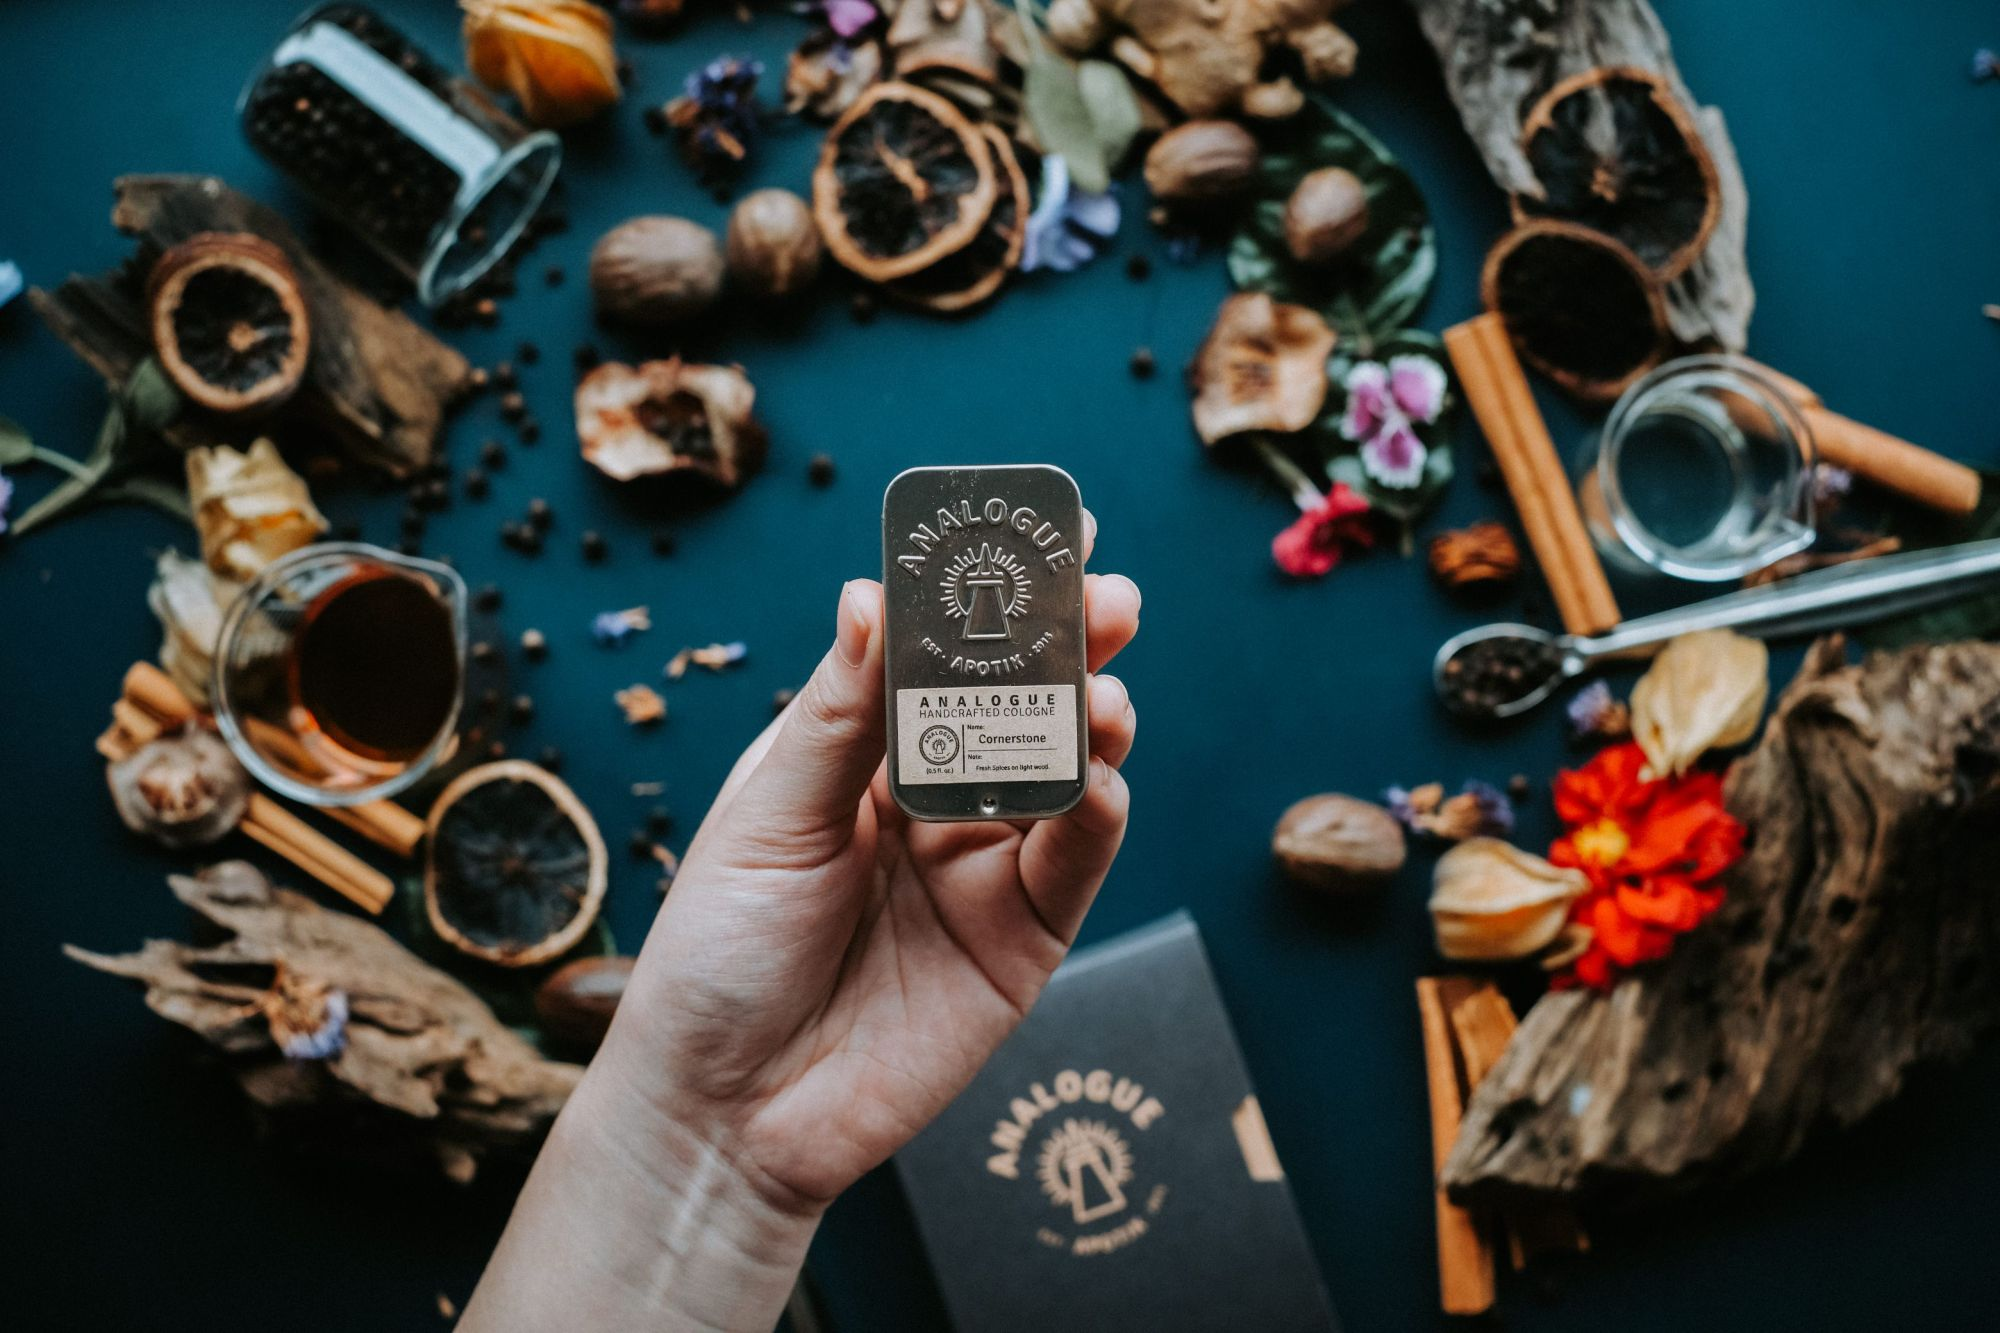 Homegrown and international brands to try out the solid perfume trend. (Photo: Courtesy of Analogue Apotik)